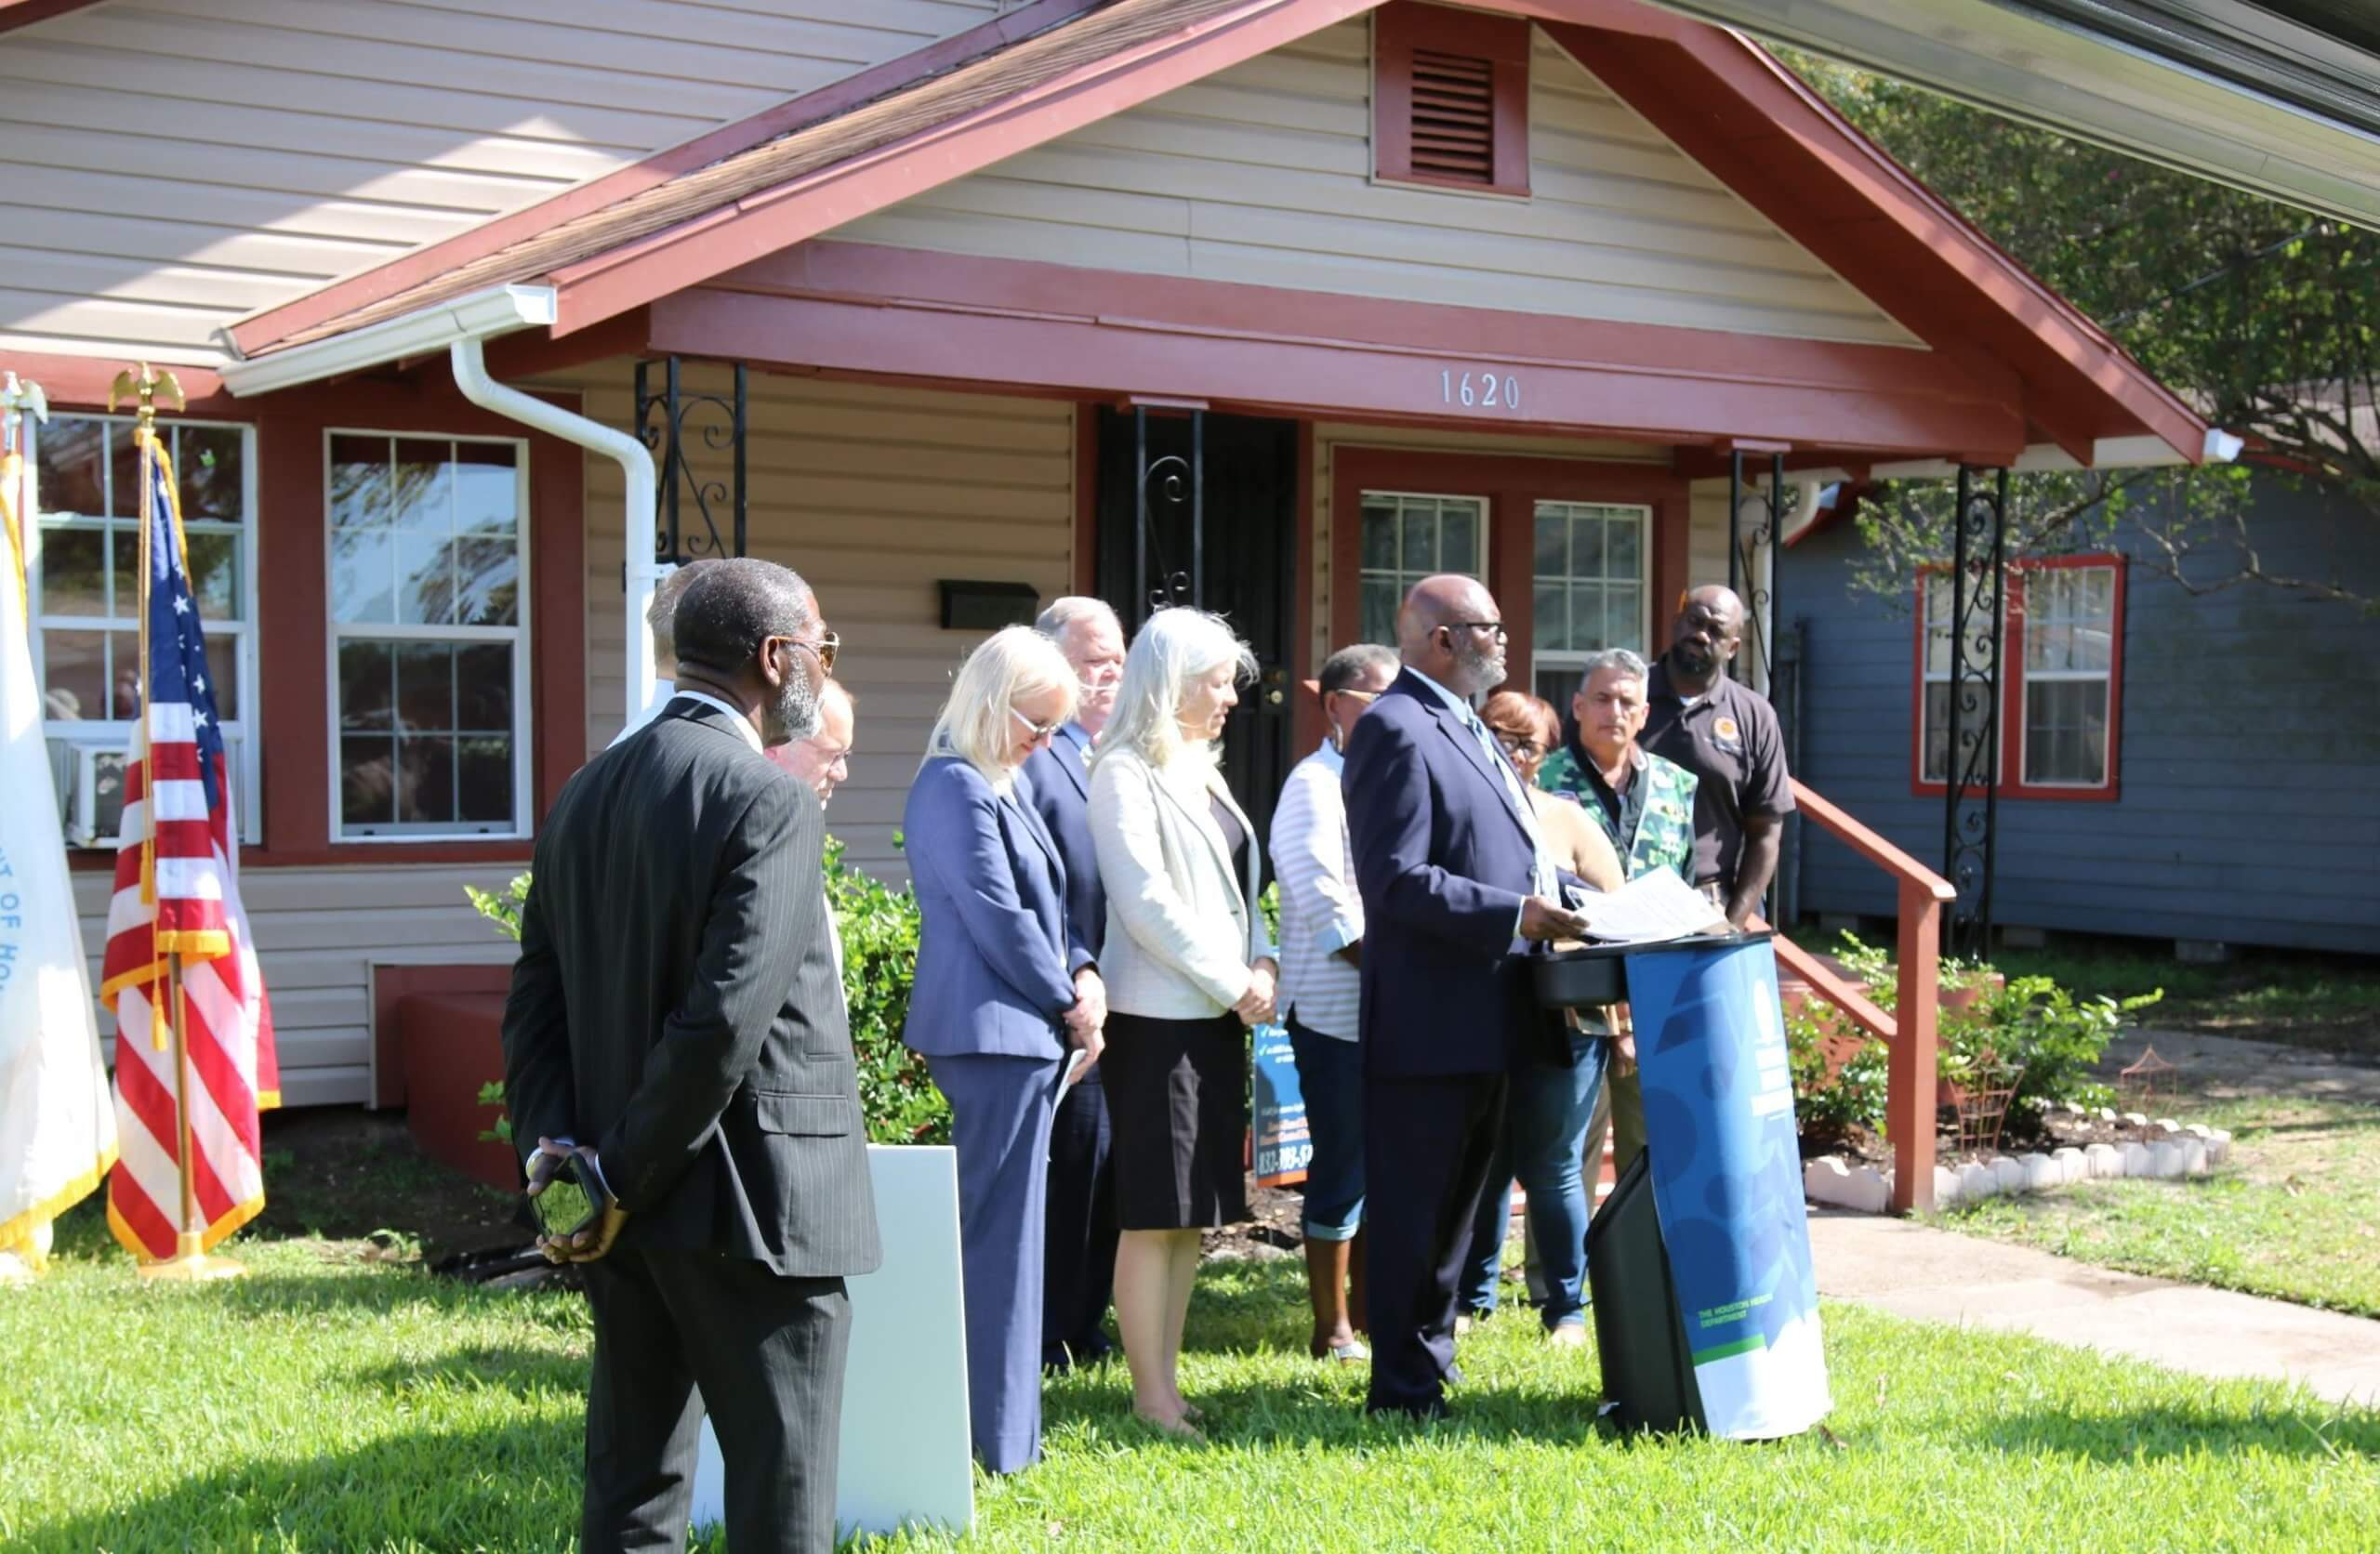 Houston Health Department Director Stephen Williams announces a $9.7 million HUD grant for lead-based paint hazard reduction to 450 homes outside a recently abated house in Fifth Ward. (Photo courtesy of Houston Health Department)